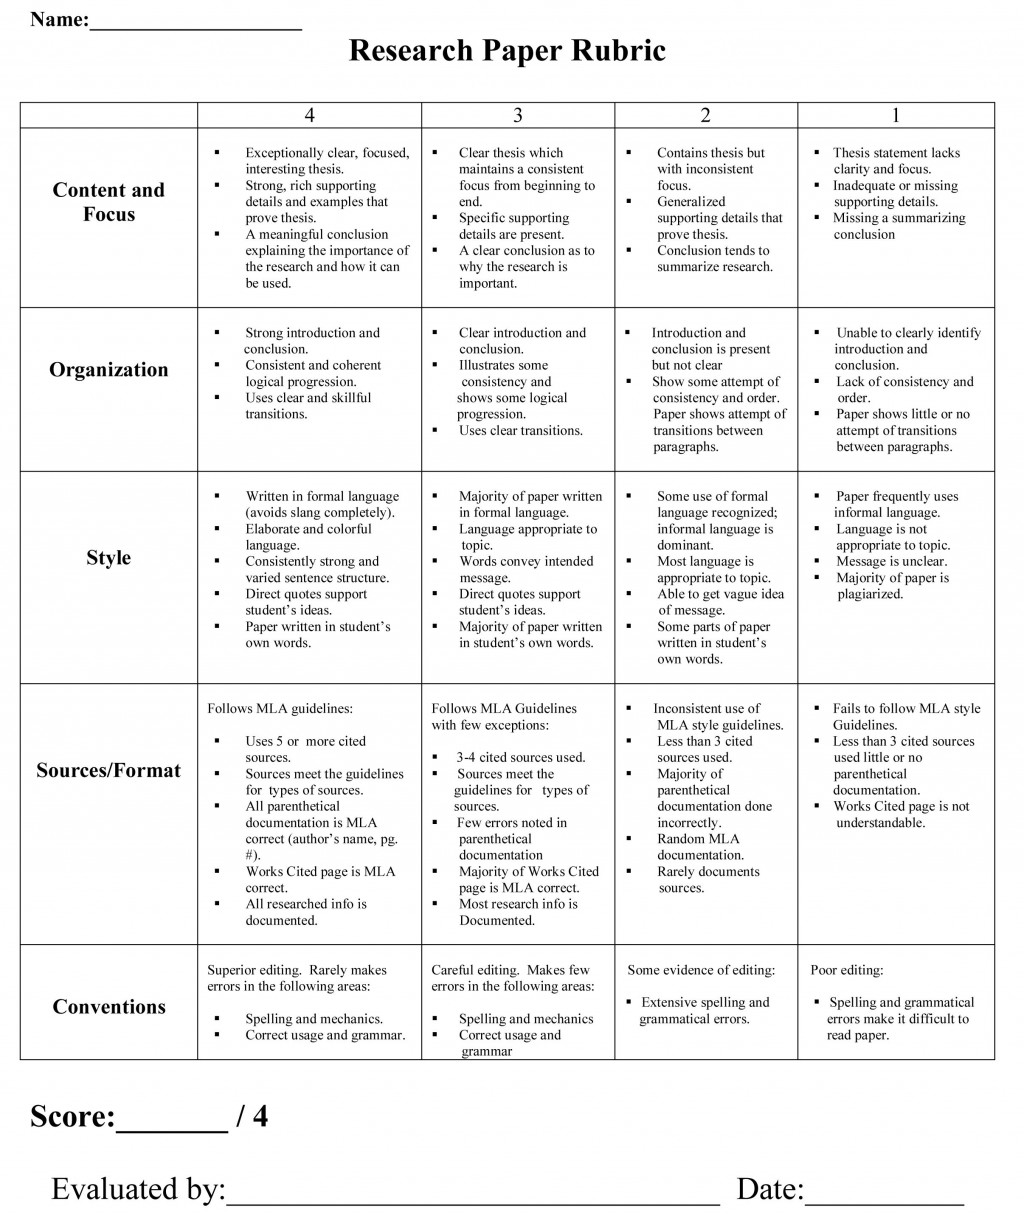 005 Research Paper Argumentative Outstanding Rubric Large